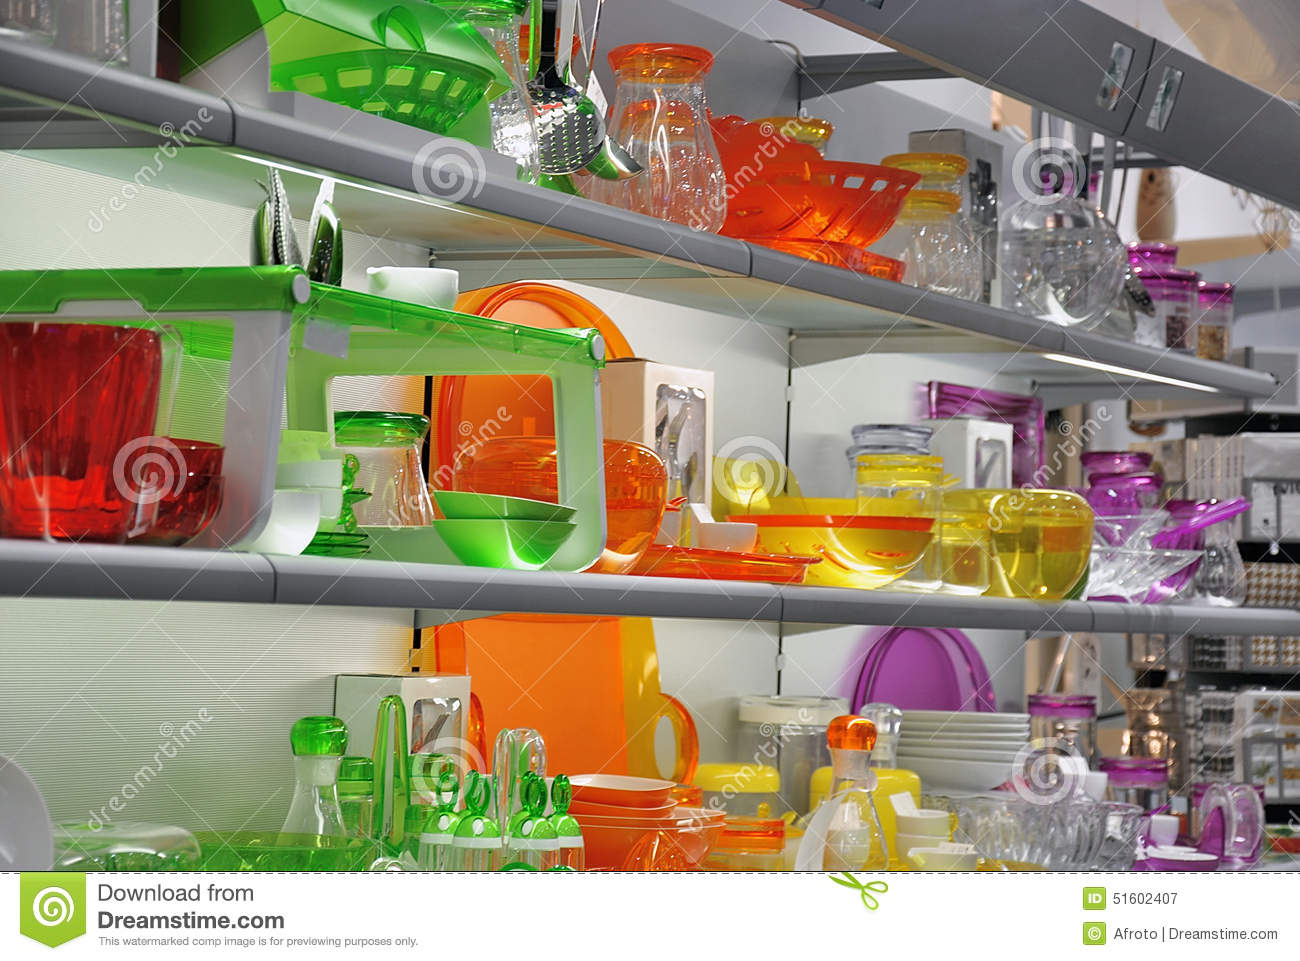 Http Www Dreamstime Com Stock Photo Colorful Kitchenware Store Glasses Pots Plates Other Kitchen Accessories Window Image51602407